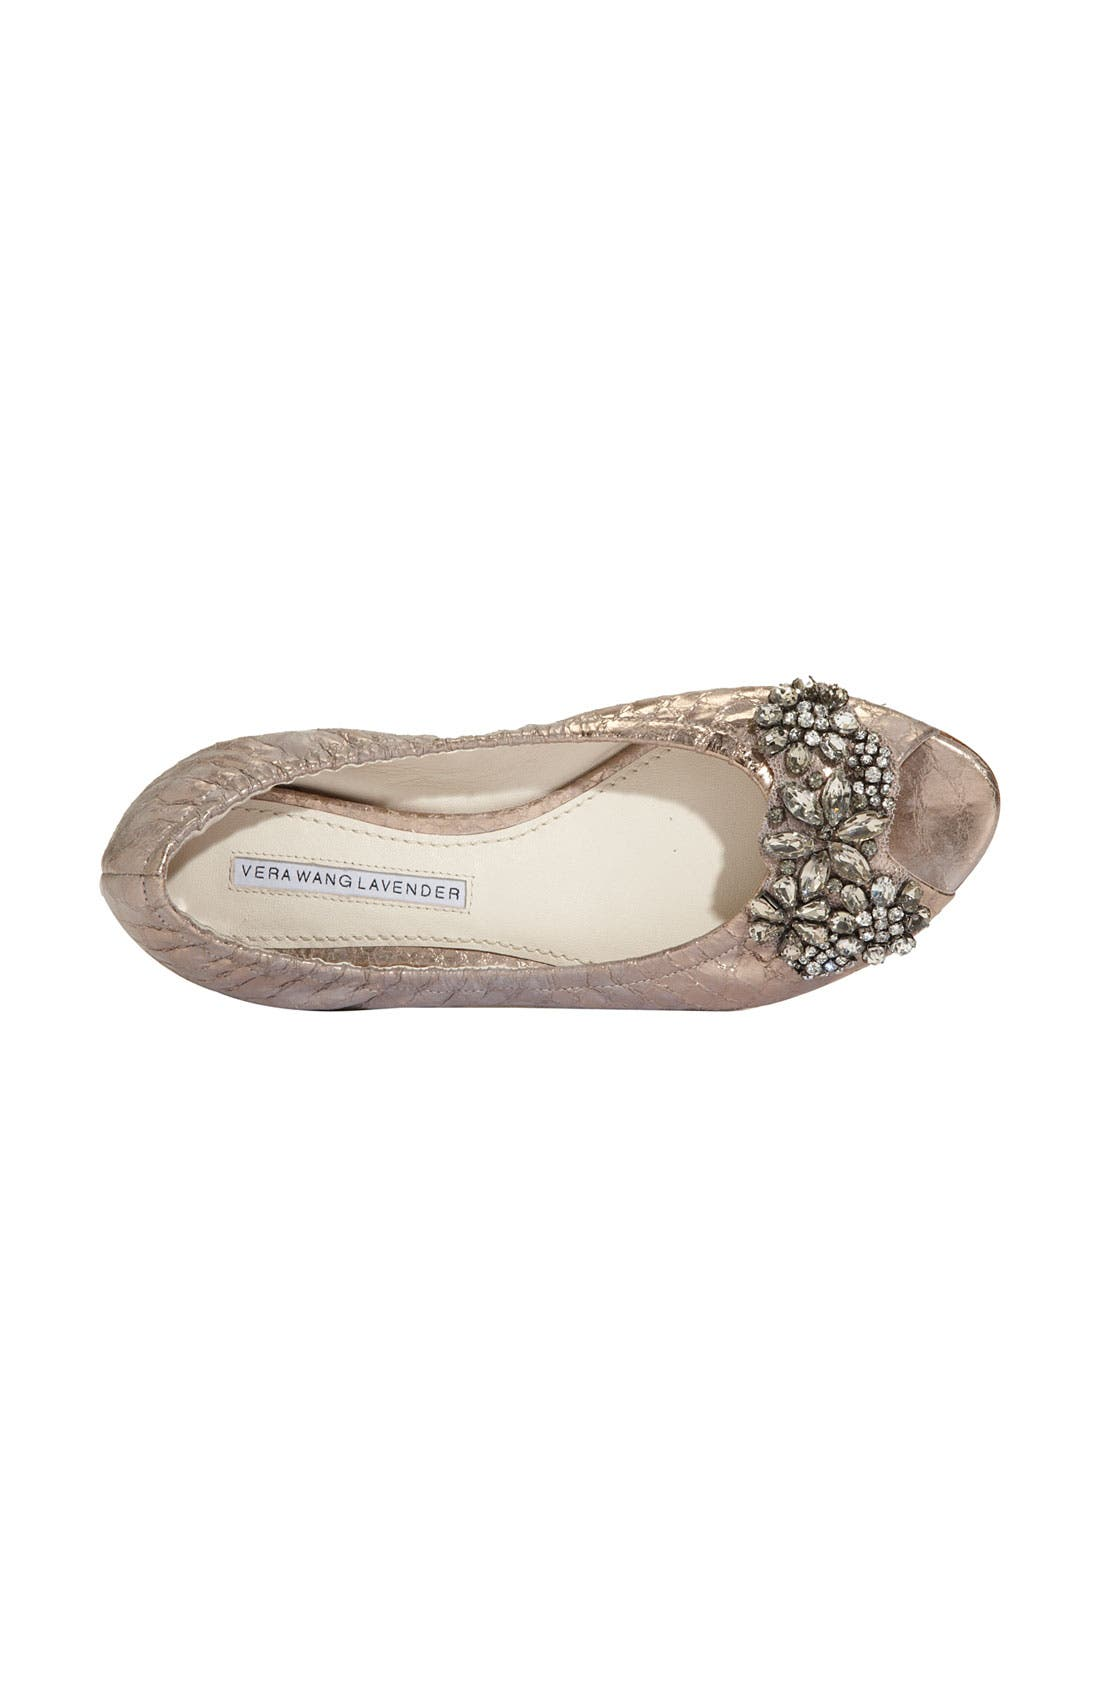 Alternate Image 3  - Vera Wang Lavender 'Luna' Snake Embossed Metallic Leather Flat